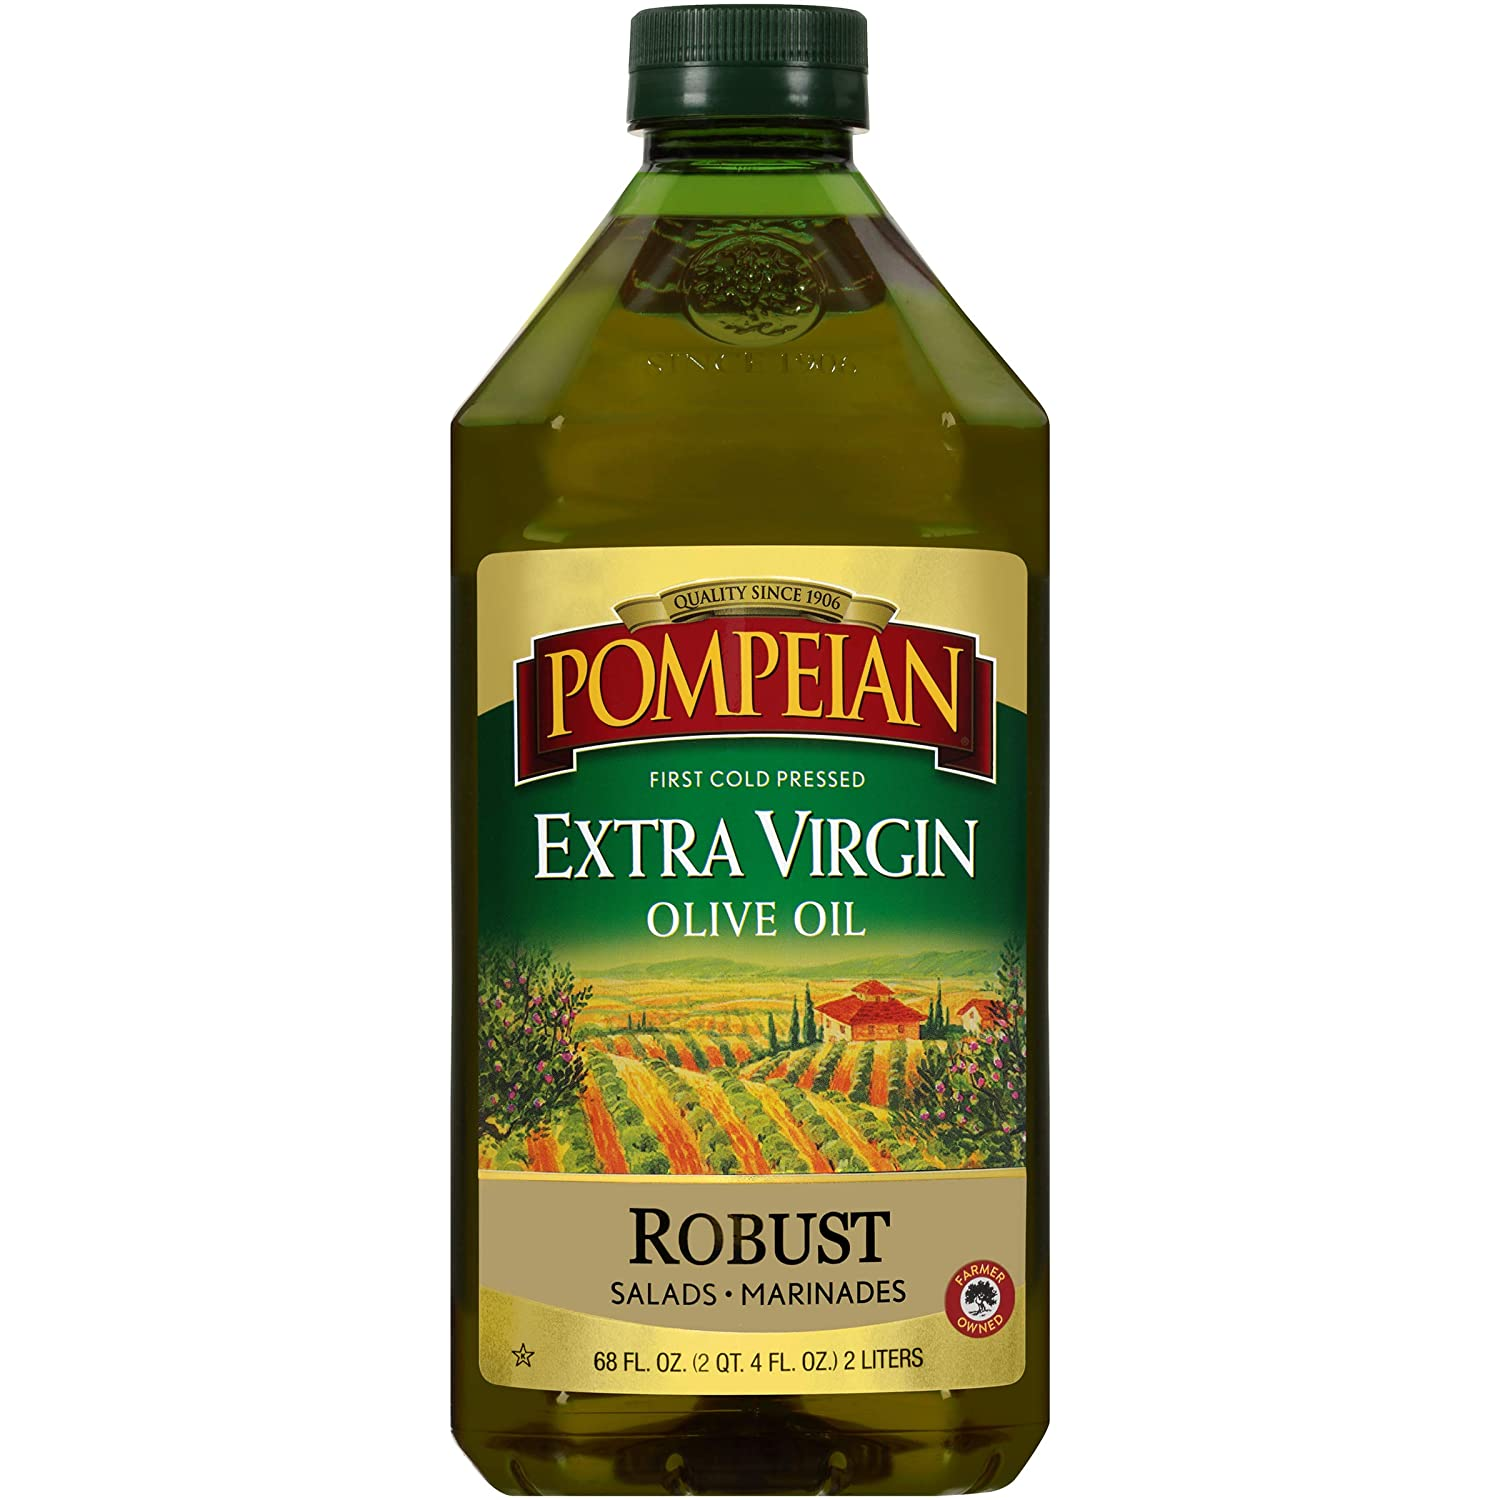 Pompeian Robust Extra Virgin Olive Oil